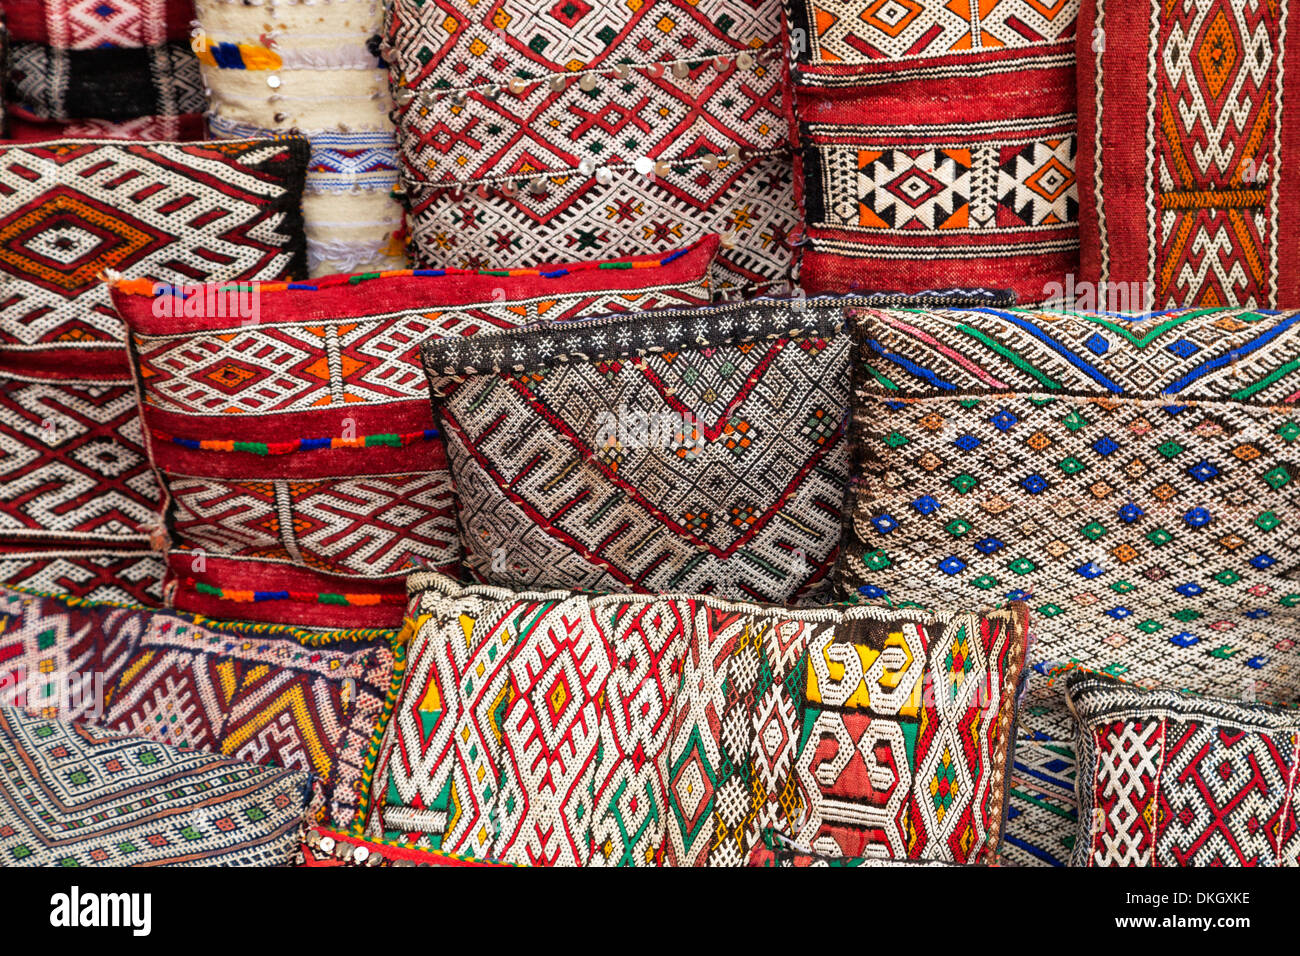 Cushions For Sale Traditional Colourful Moroccan Cushions For Sale In The